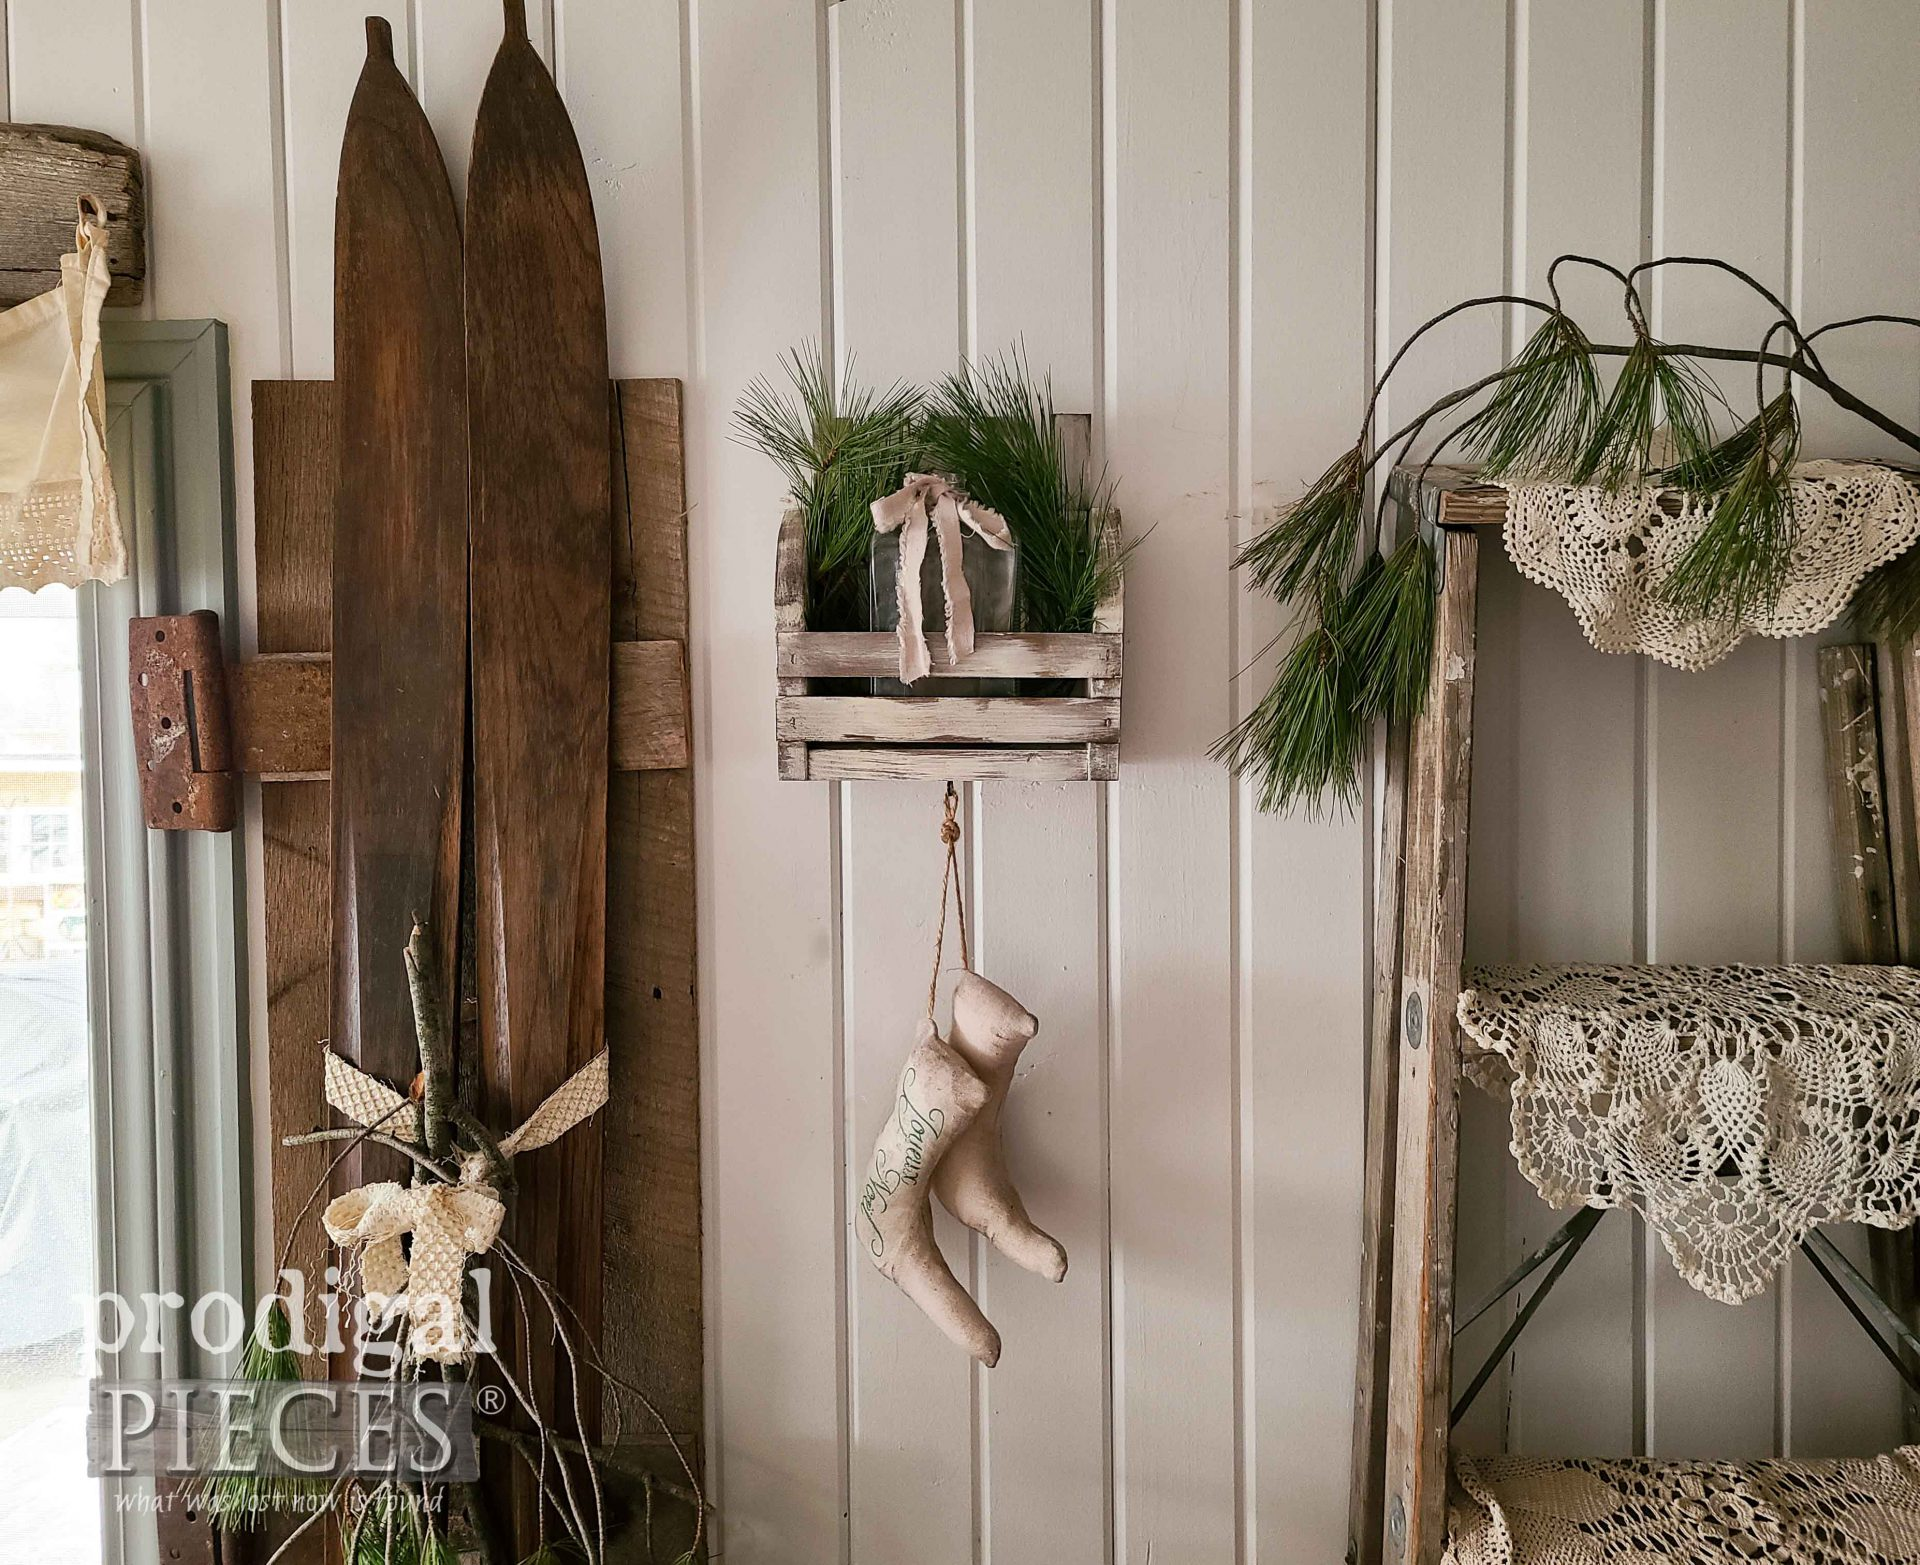 Farmhouse DIY Wall Pocket with Stockings Tutorial by Larissa of Prodigal Pieces | prodigalpieces.com #prodigalpieces #farmhouse #home #homedecor #diy #christmas